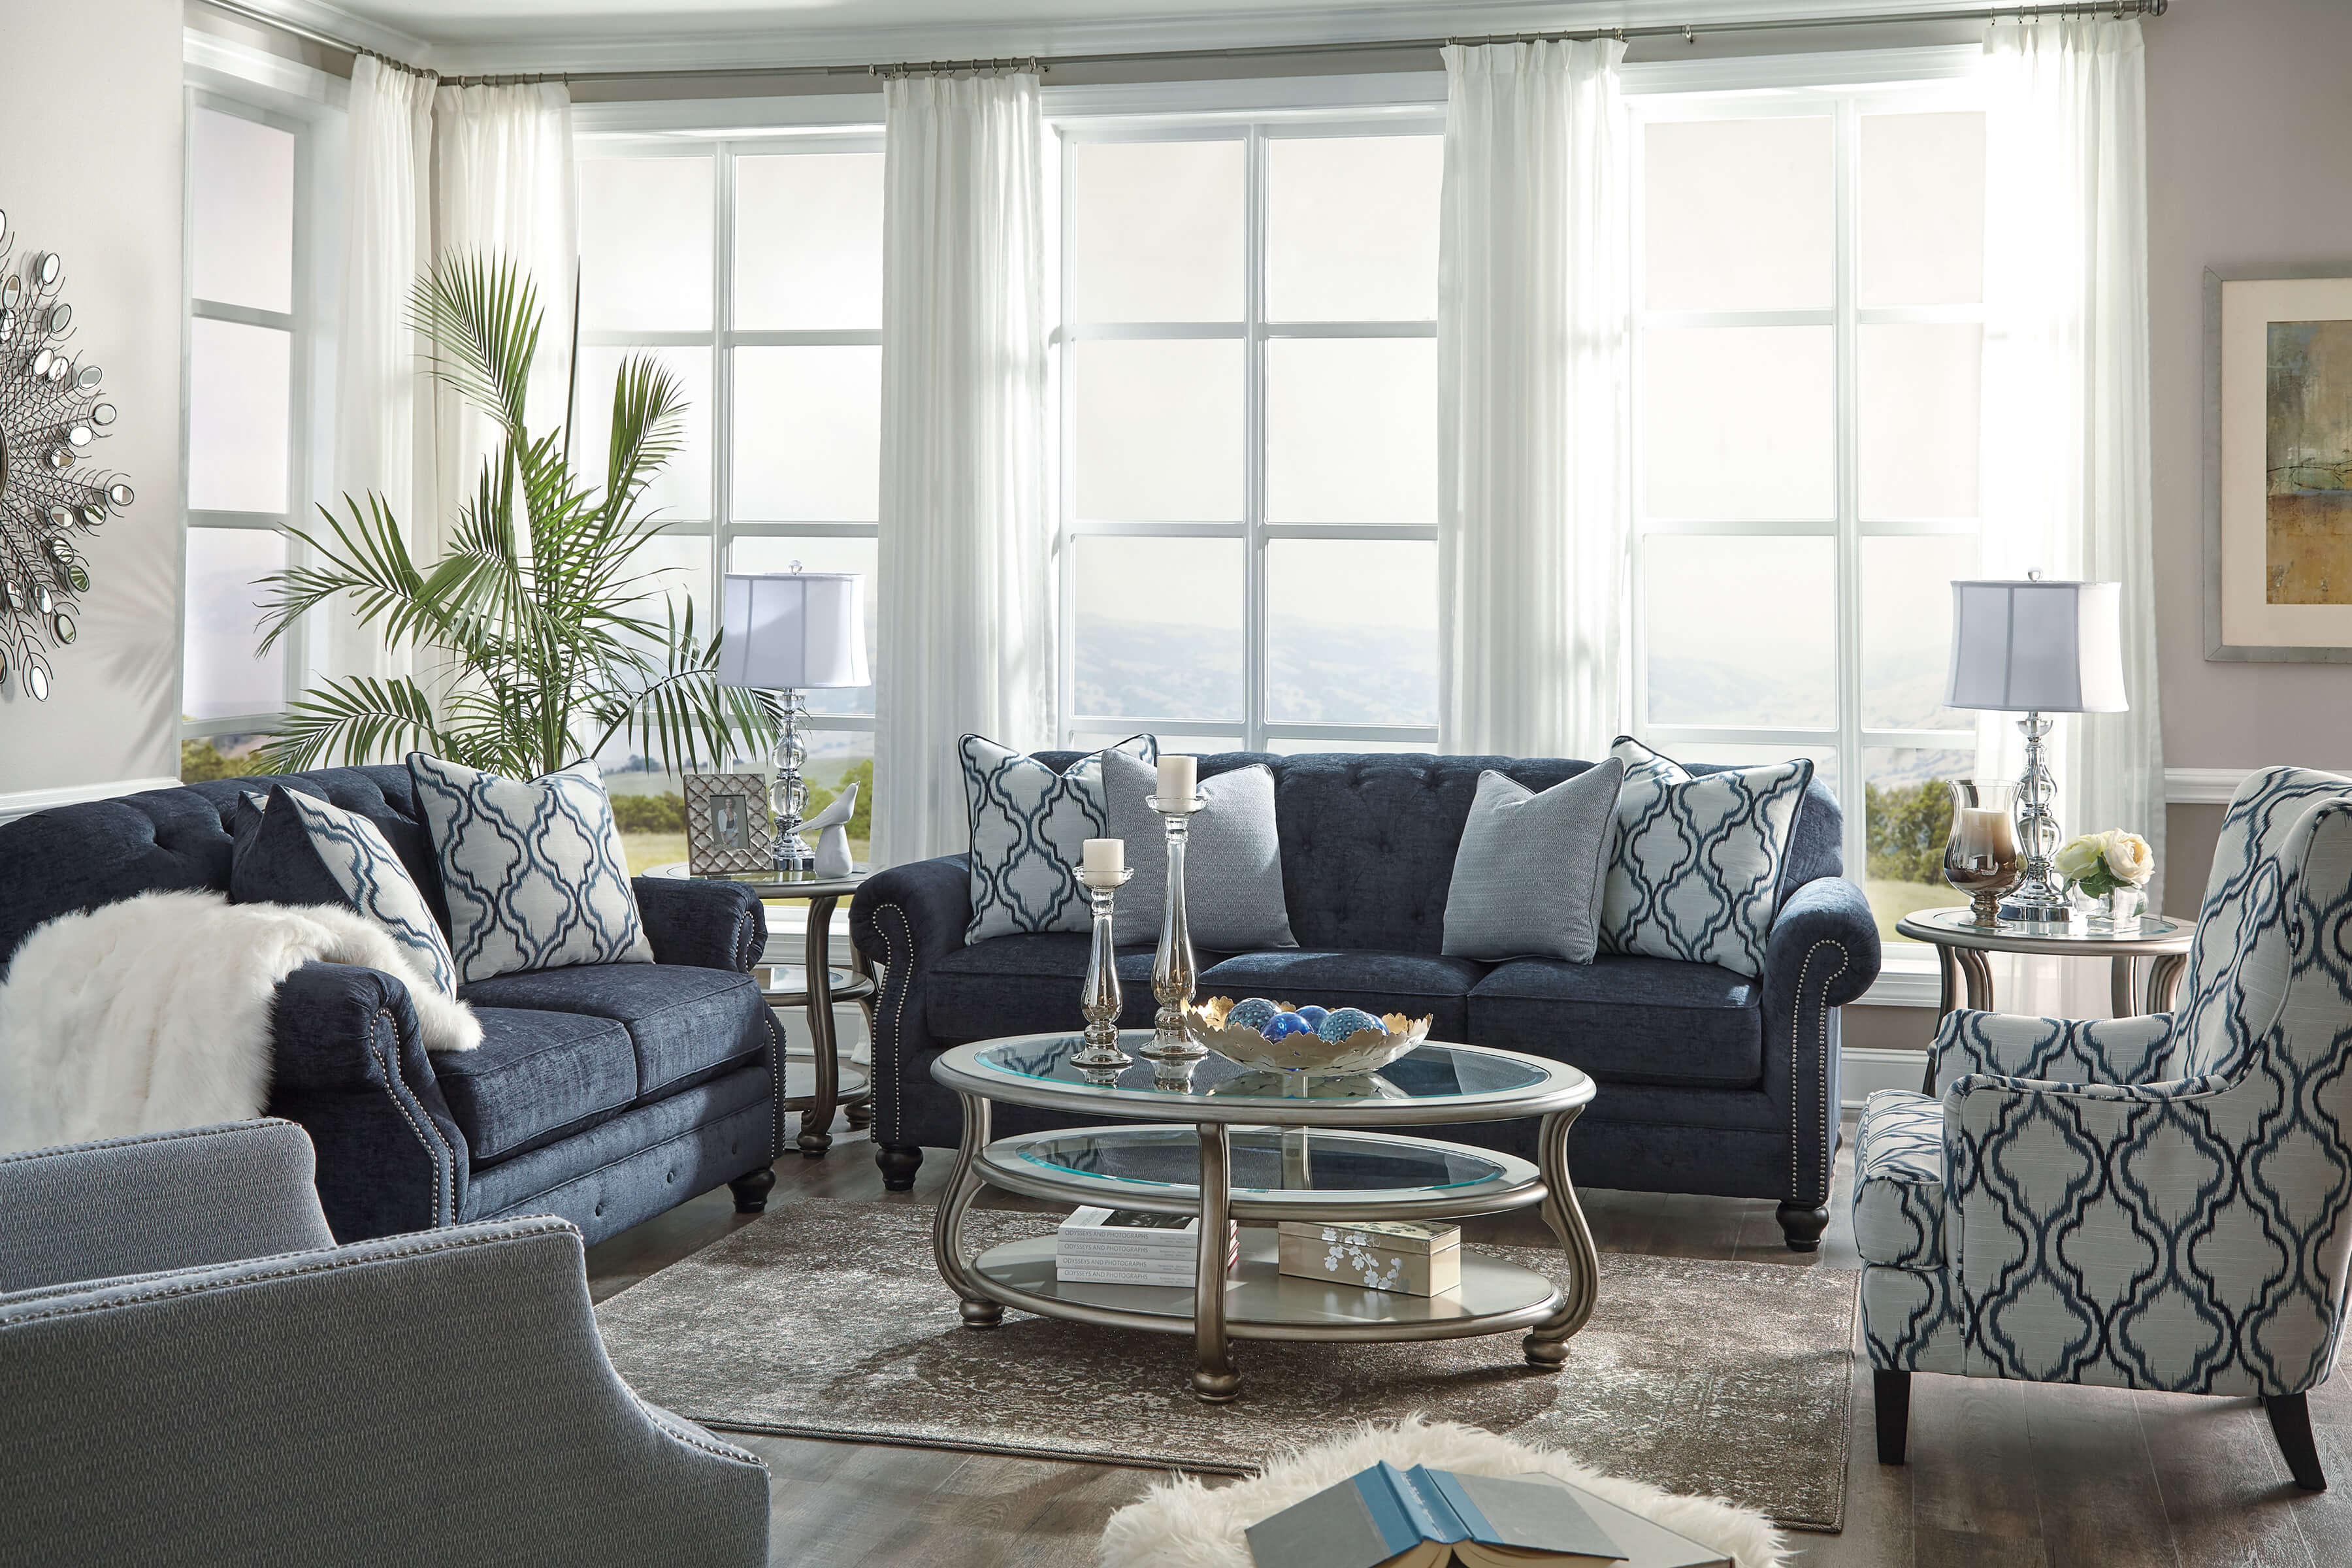 71304 LaVernia Chesterfied Navy Blue Sofa and Loveseat